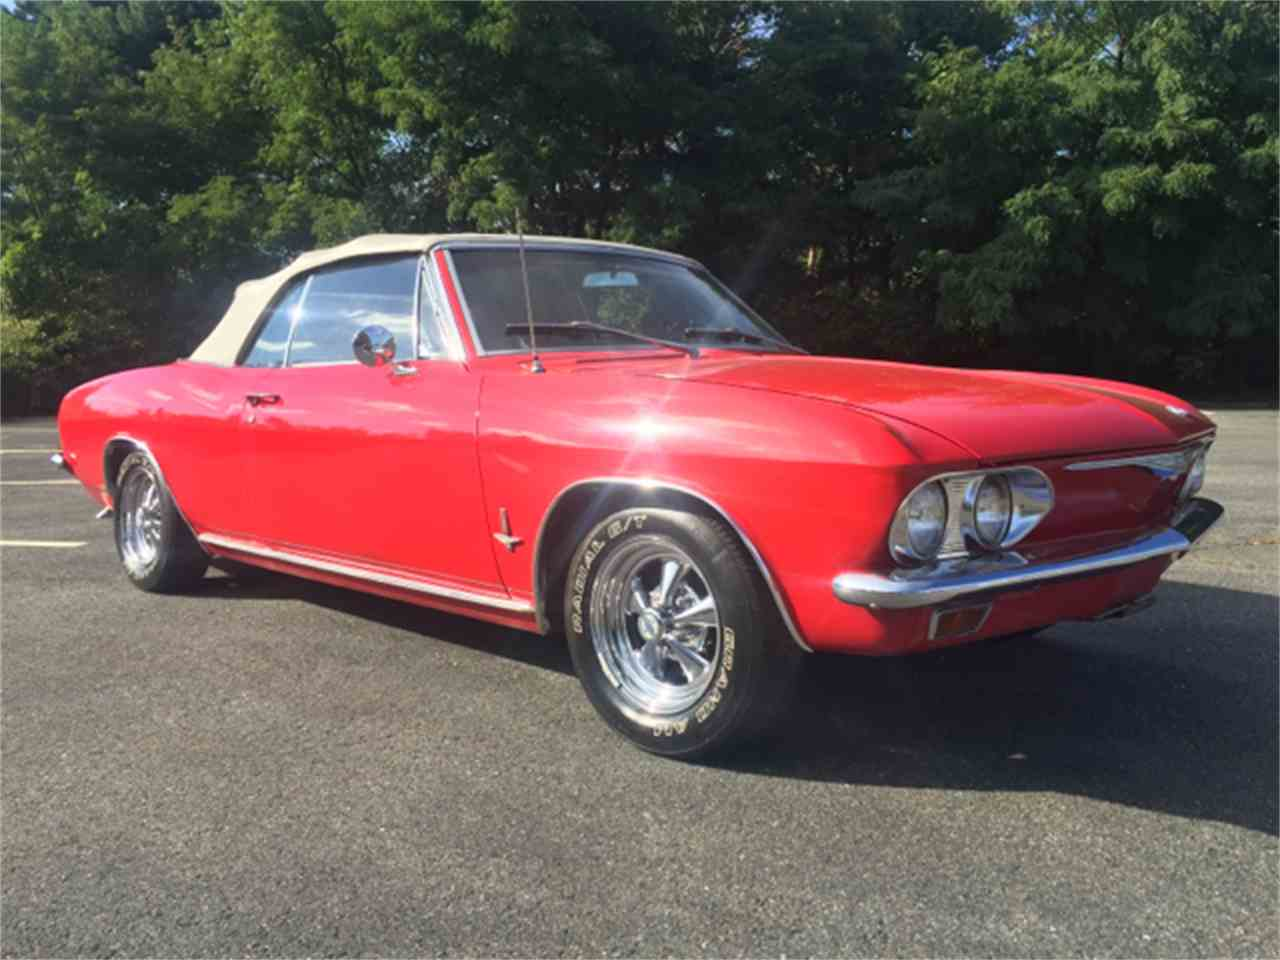 Old 4 Door Trucks For Sale >> 1965 Chevrolet Corvair for Sale   ClassicCars.com   CC-940944